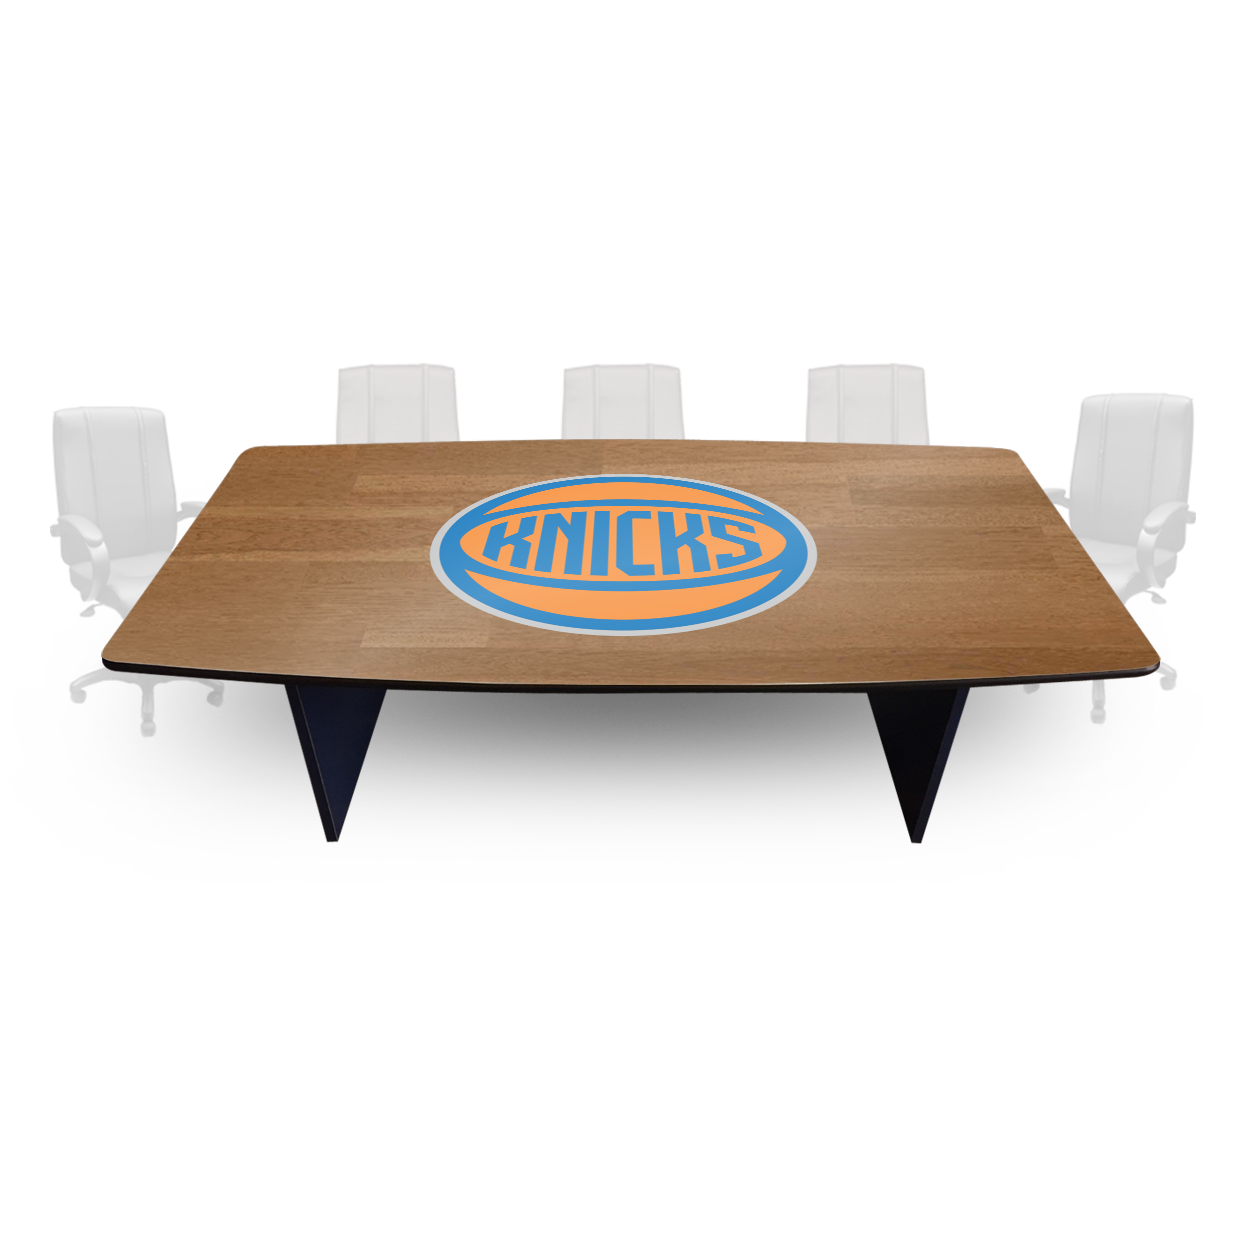 Branded Conference Room Table Foot Conference Room Table - 8 foot conference room table